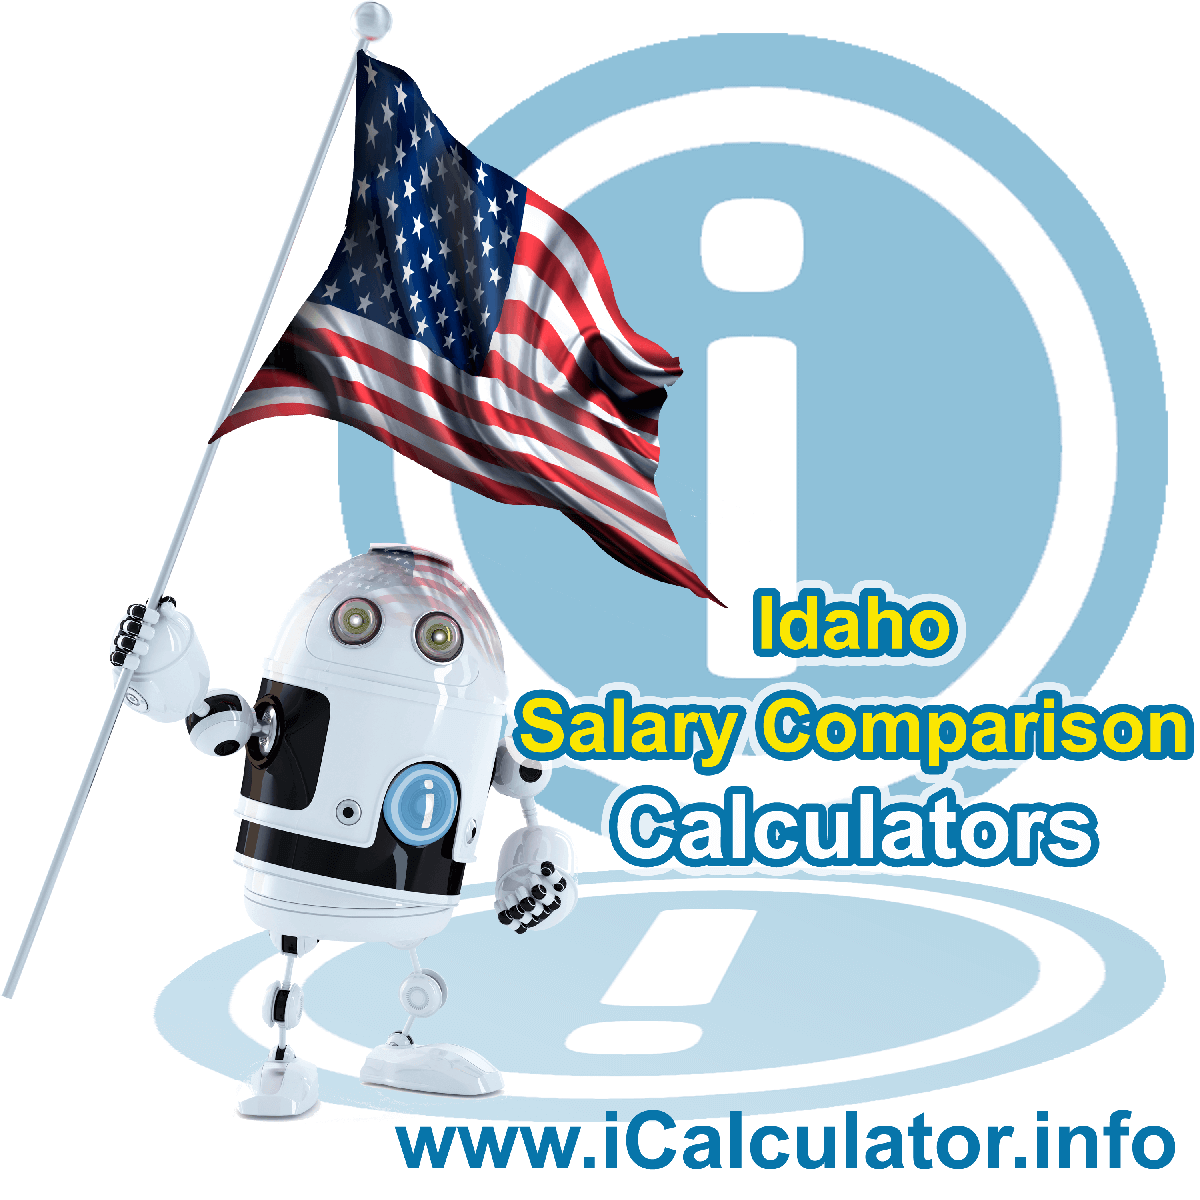 Idaho Salary Comparison Calculator 2019 | iCalculator | The Idaho Salary Comparison Calculator allows you to quickly calculate and compare upto 6 salaries in Idaho or between other states for the 2019 tax year and historical tax years. Its an excellent tool for jobseekers, pay raise comparison and comparison of salaries between different US States